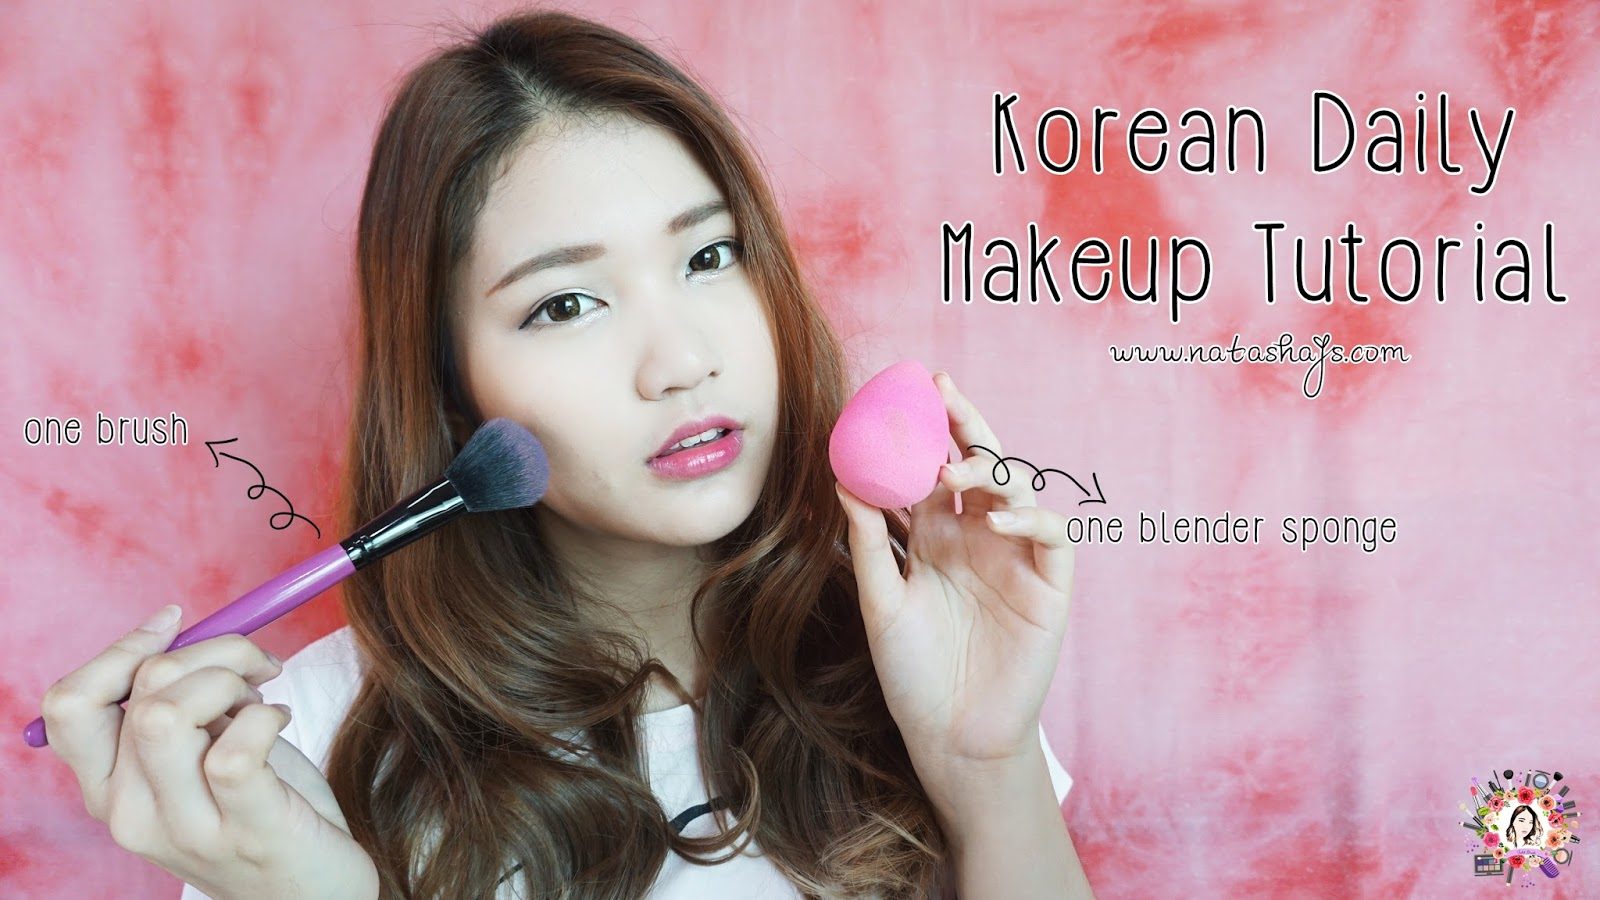 Violet Brush Indonesian Beauty Blogger 2016 Secret Key Glam Lip Tint Glos 1 Pink Orange Korean Daily Makeup Tutorial Using Only One Blender